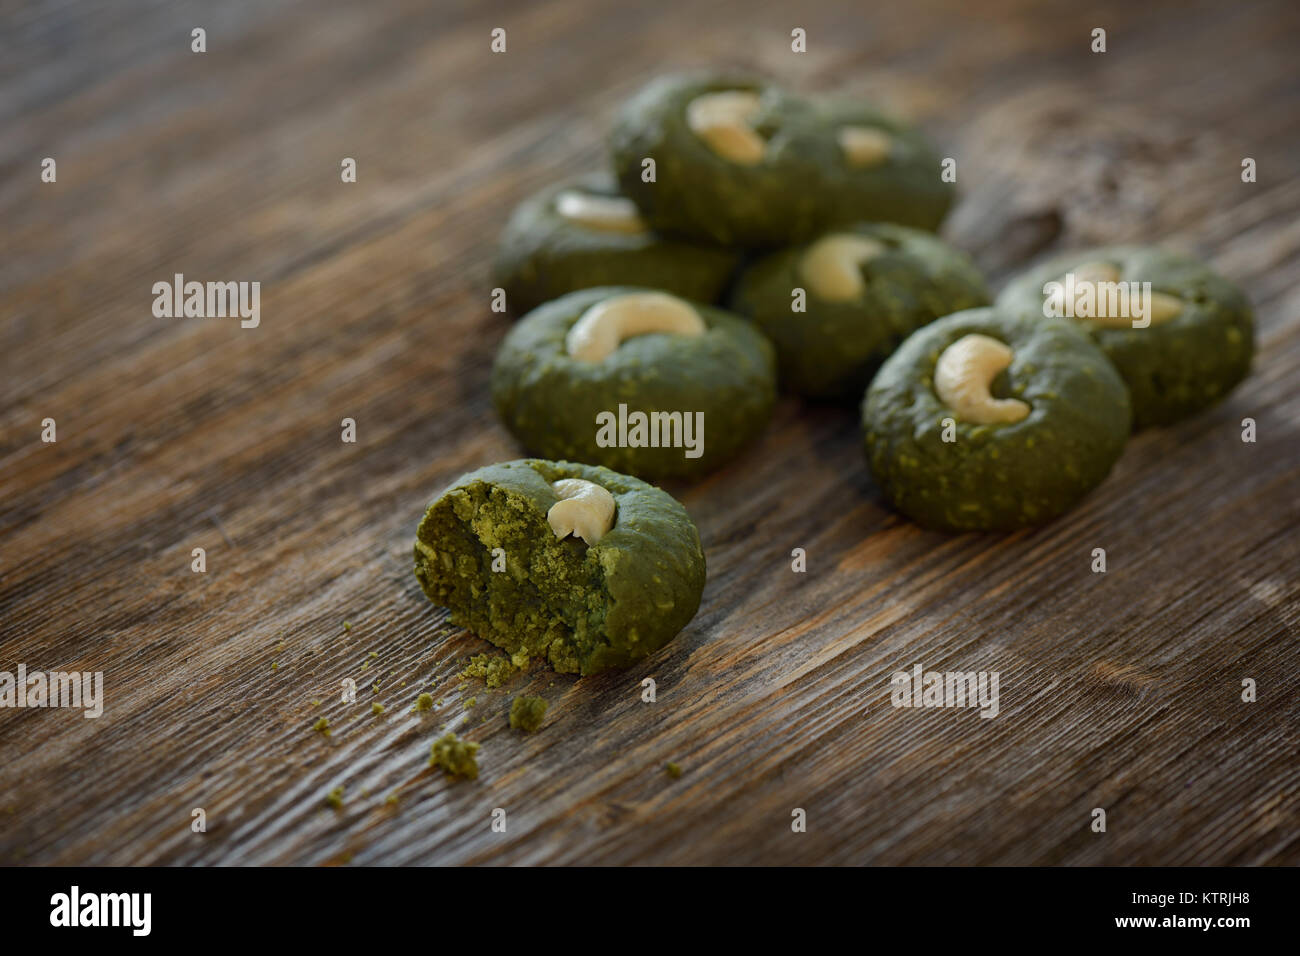 Artistic food still life of home-made Japanese Matcha green tea cookies on rustic wooden background - Stock Image